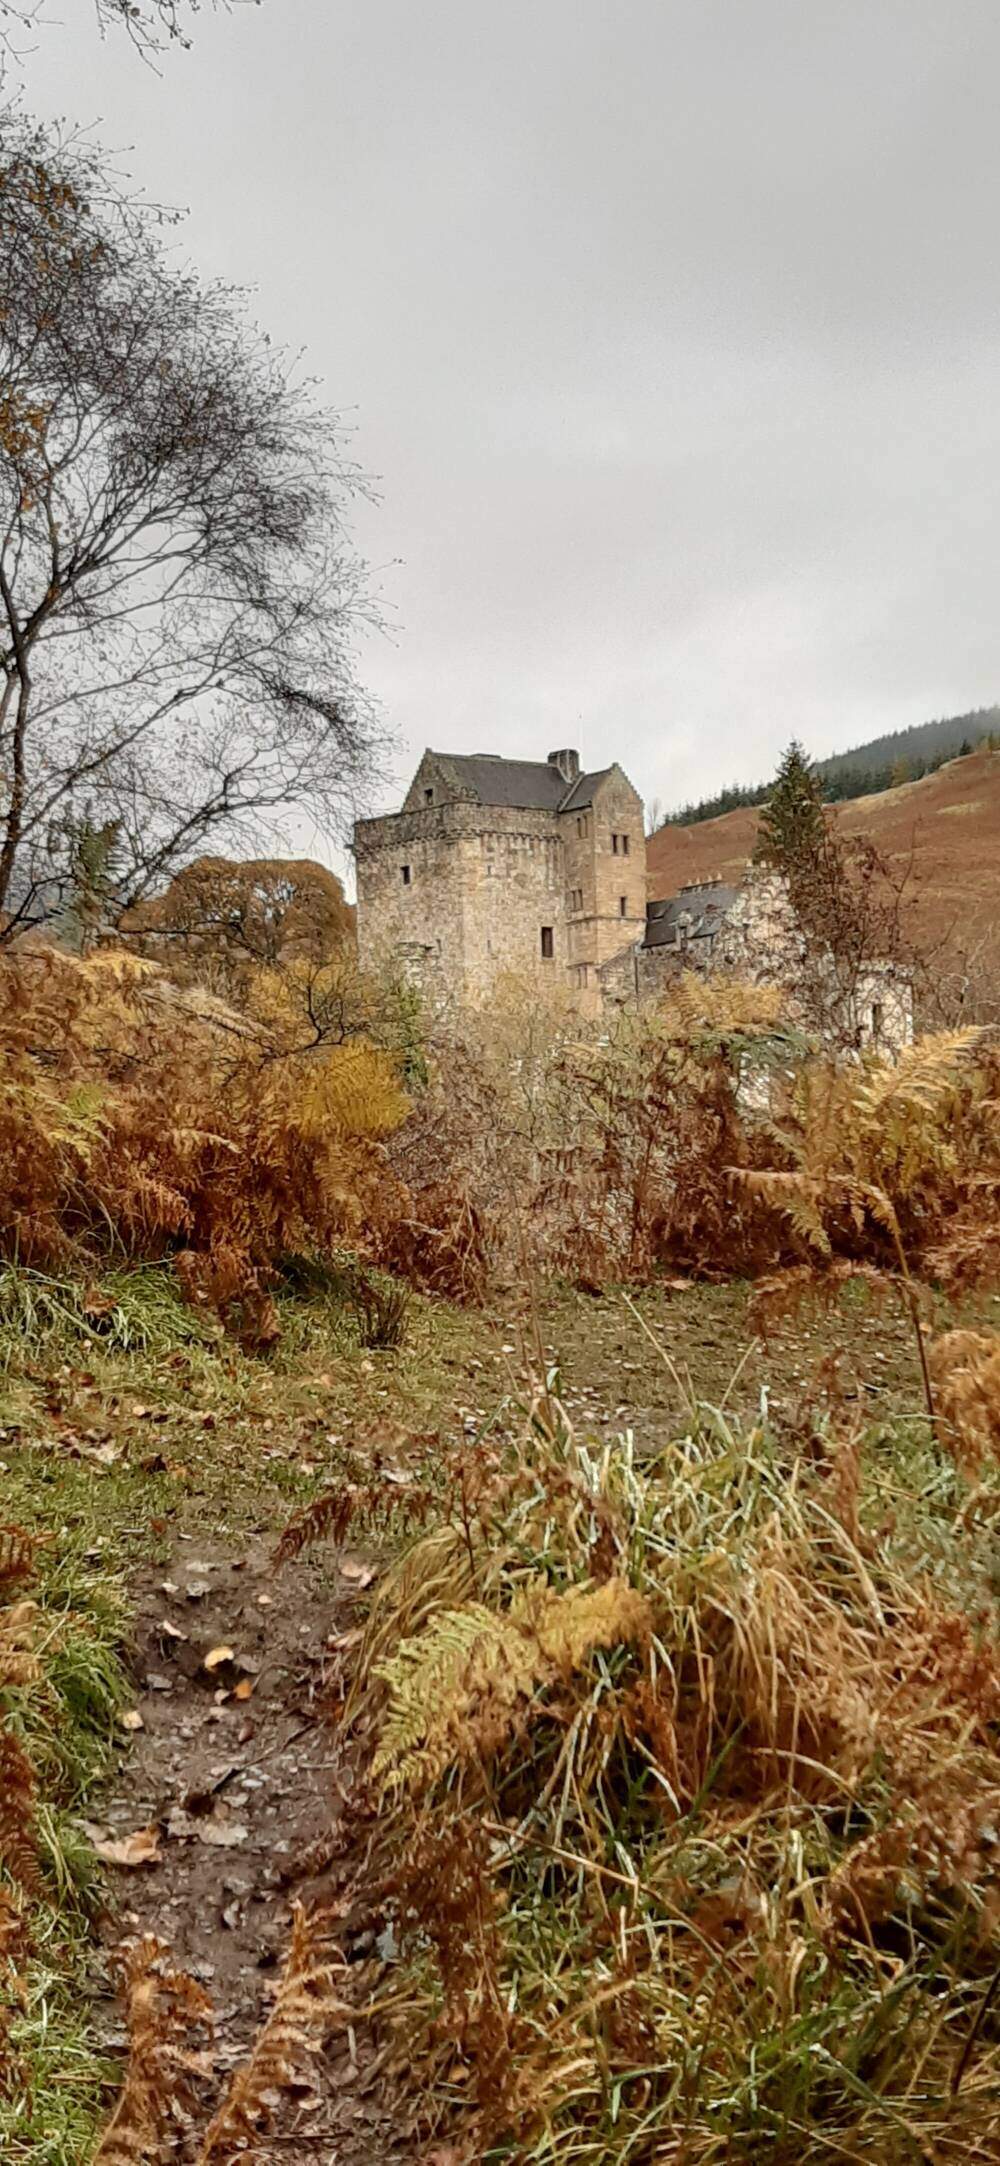 A ruined castle sits high on a hill. There is a rough path leading up to it; the bracken on either side of the path is turning orange and brown as it is autumn.